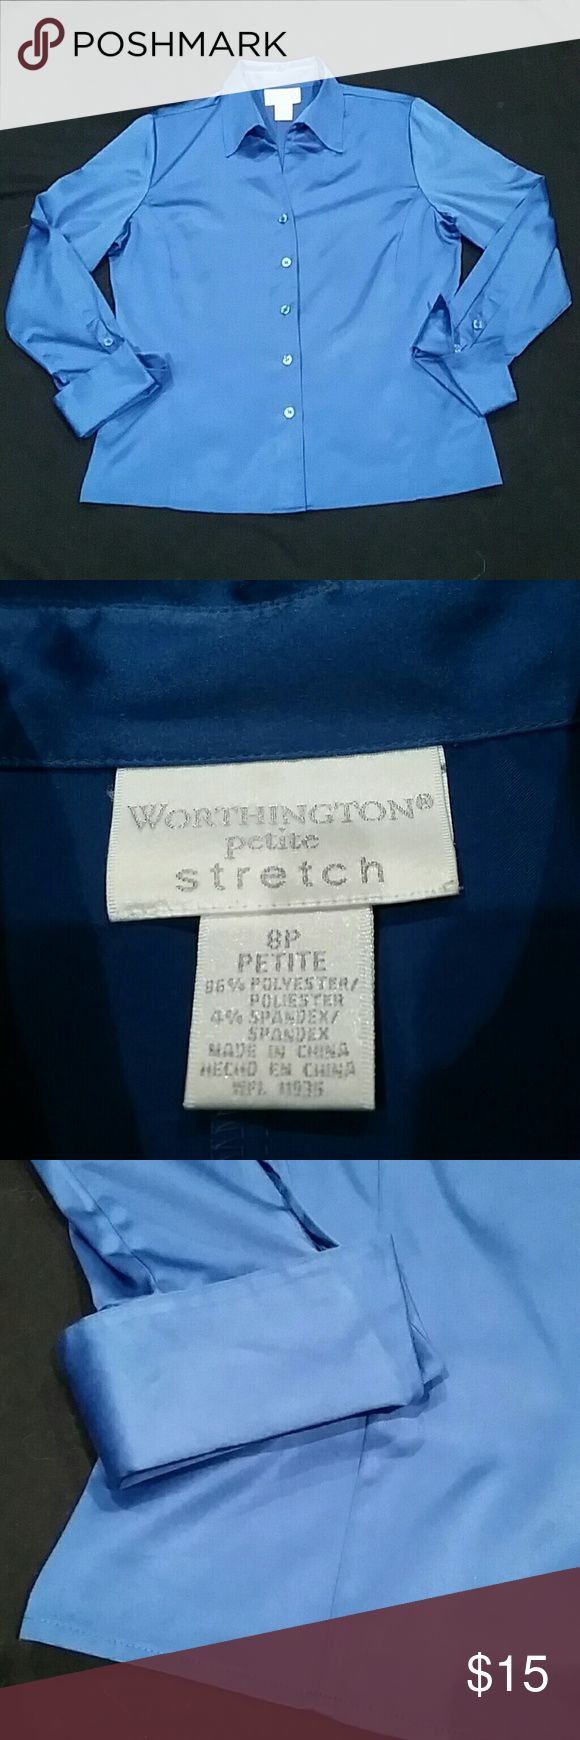 Worthington stretch satin dress shirt Beautiful teal color in stretch satin, great to dress up or for career wear. French cuffs. Timeless. Worthington Tops Button Down Shirts